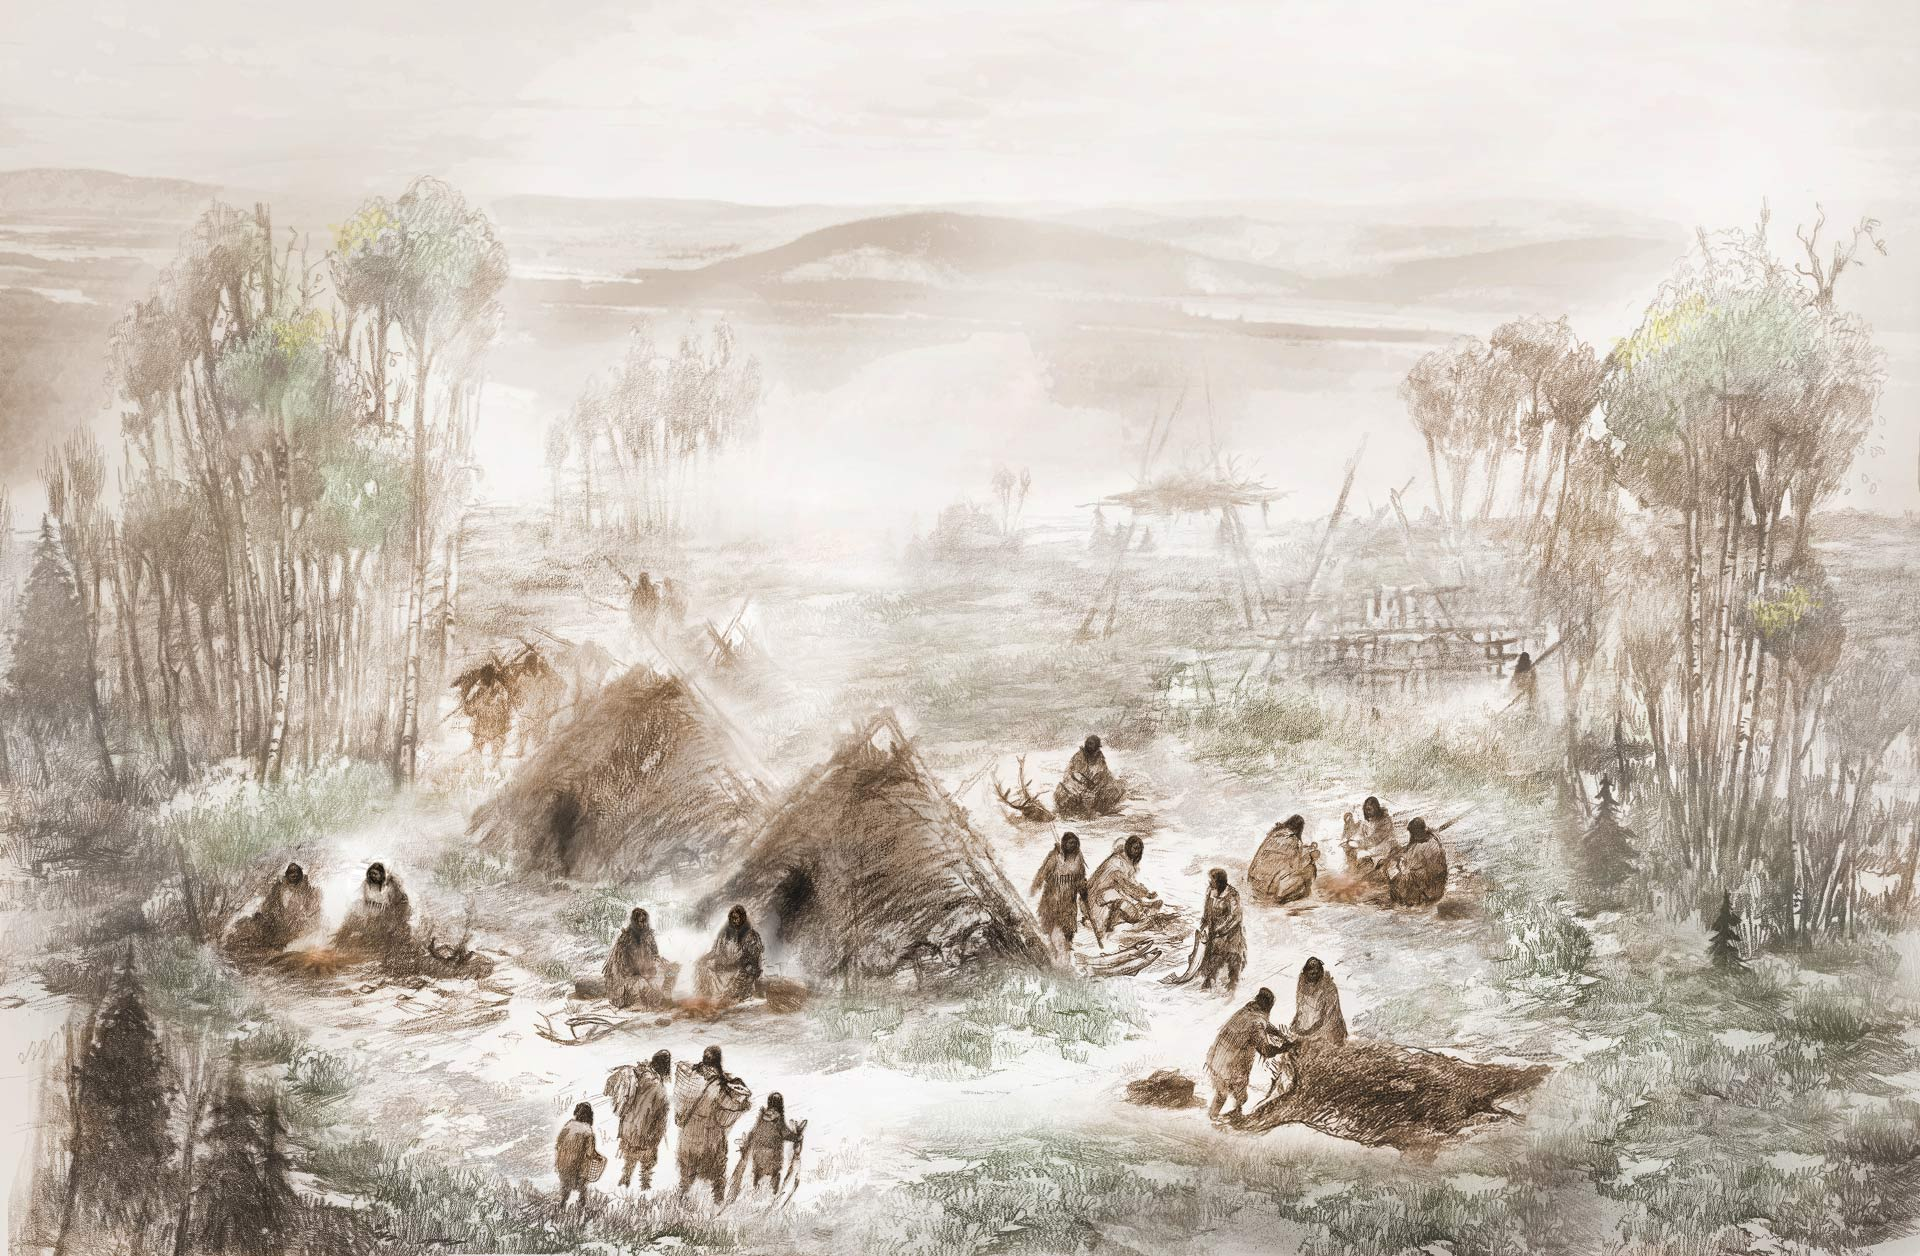 Baby Skeleton Reveals Genetic History Of Native Americans And Mysterious Migration